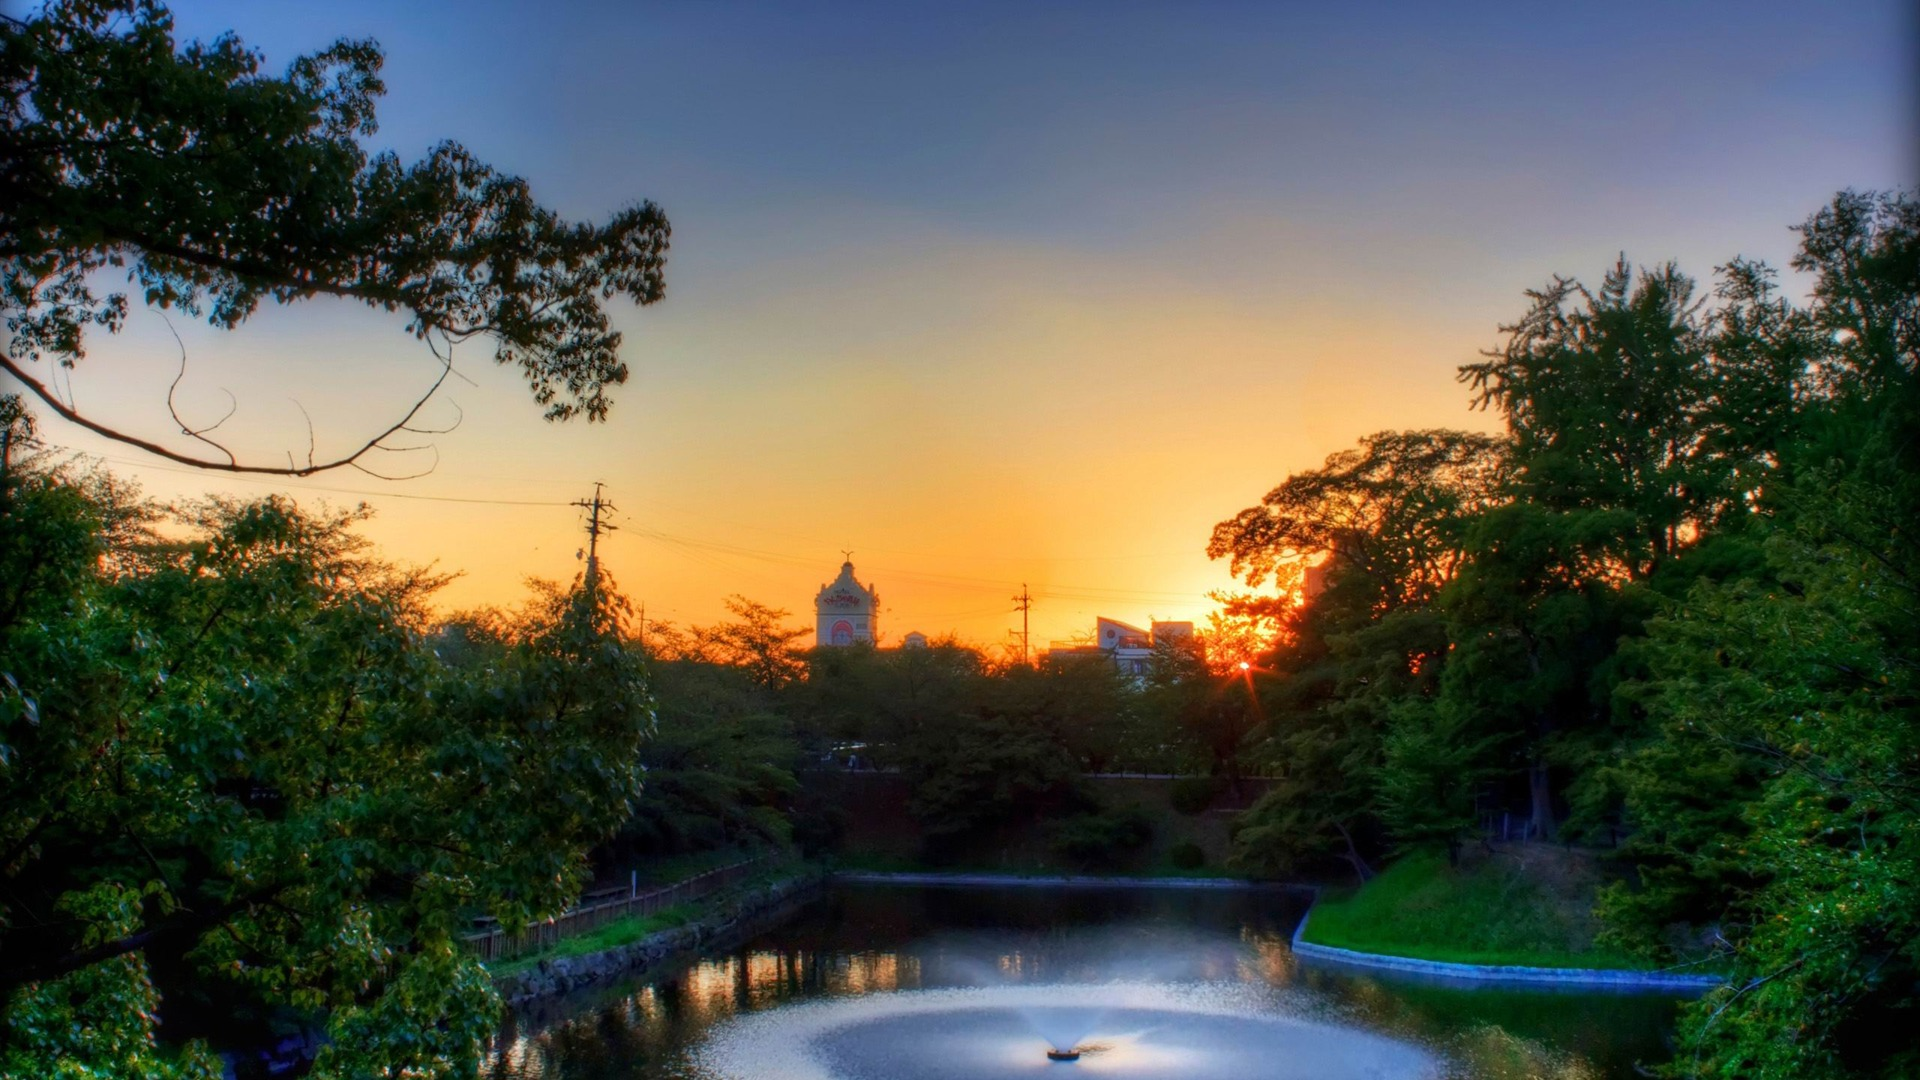 Pond Sunset Japanese Landscape Wallpaper Preview